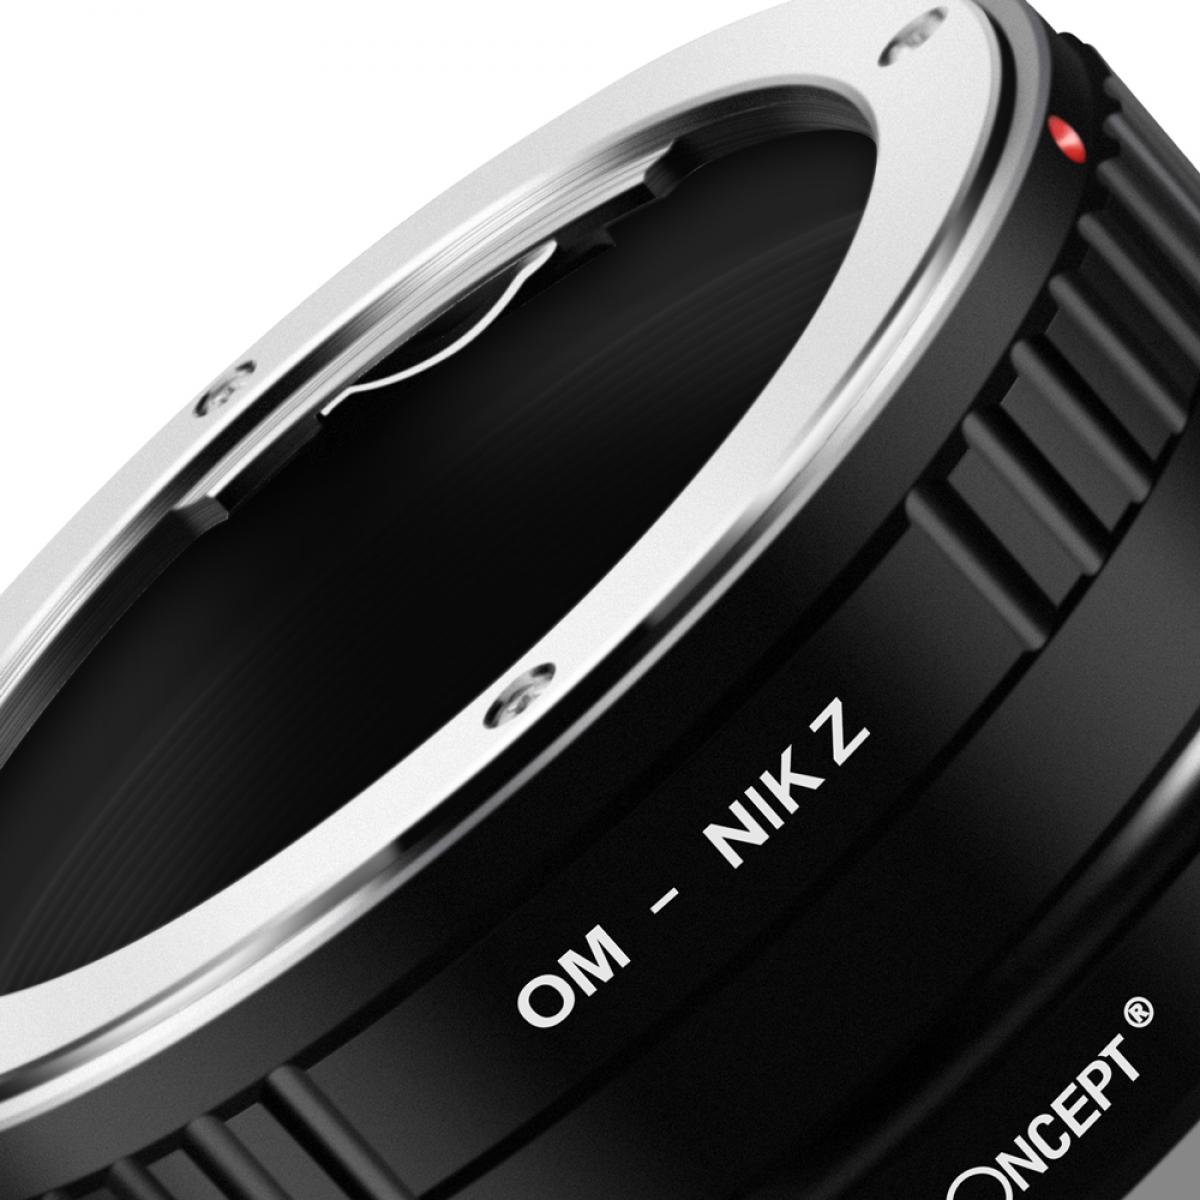 K&F M16184 Olympus OM Lenses to Nikon Z Lens Mount Adapter